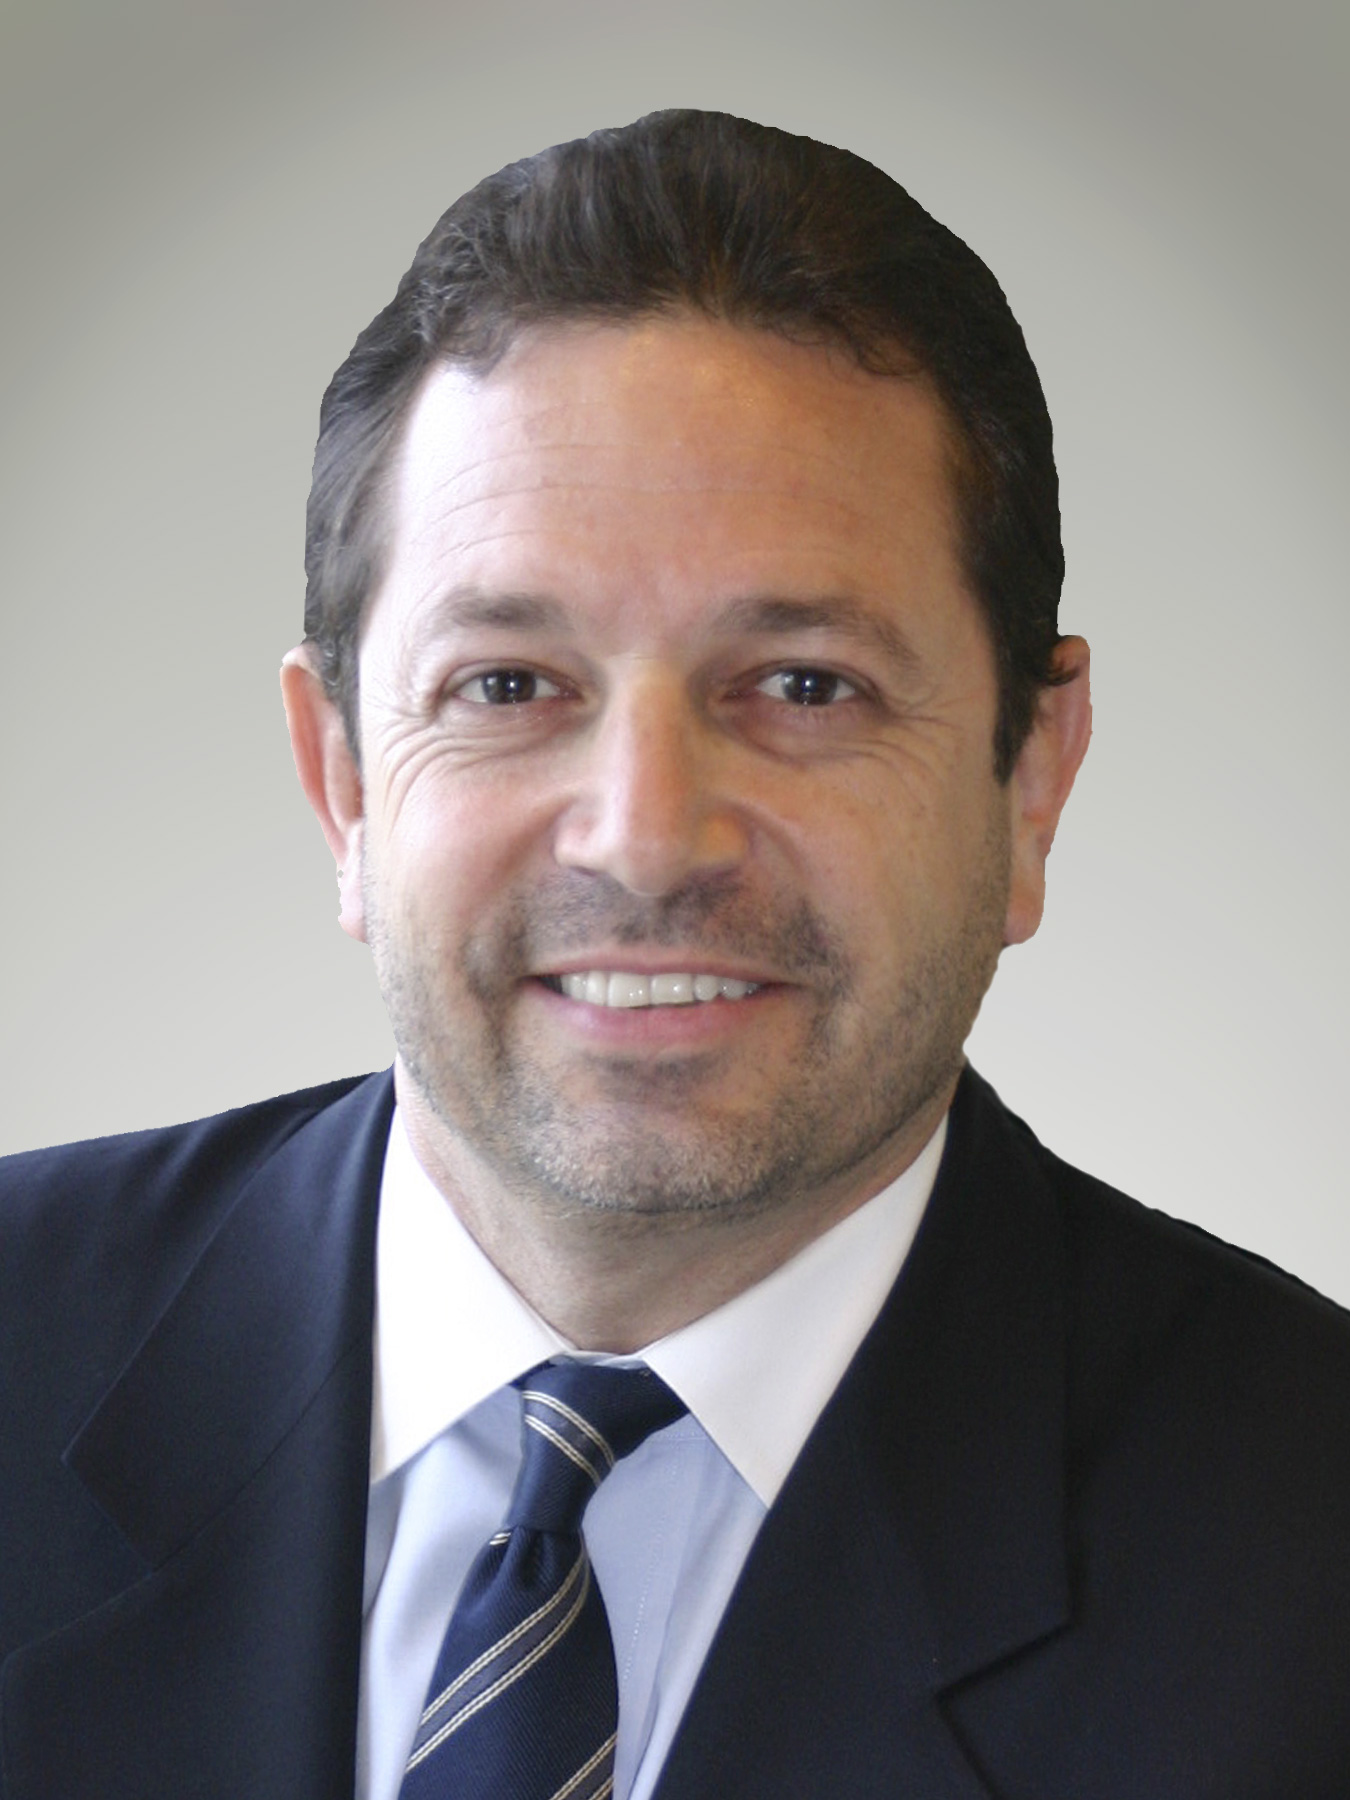 Mark I. Silberman, M.D., F.A.C.S.